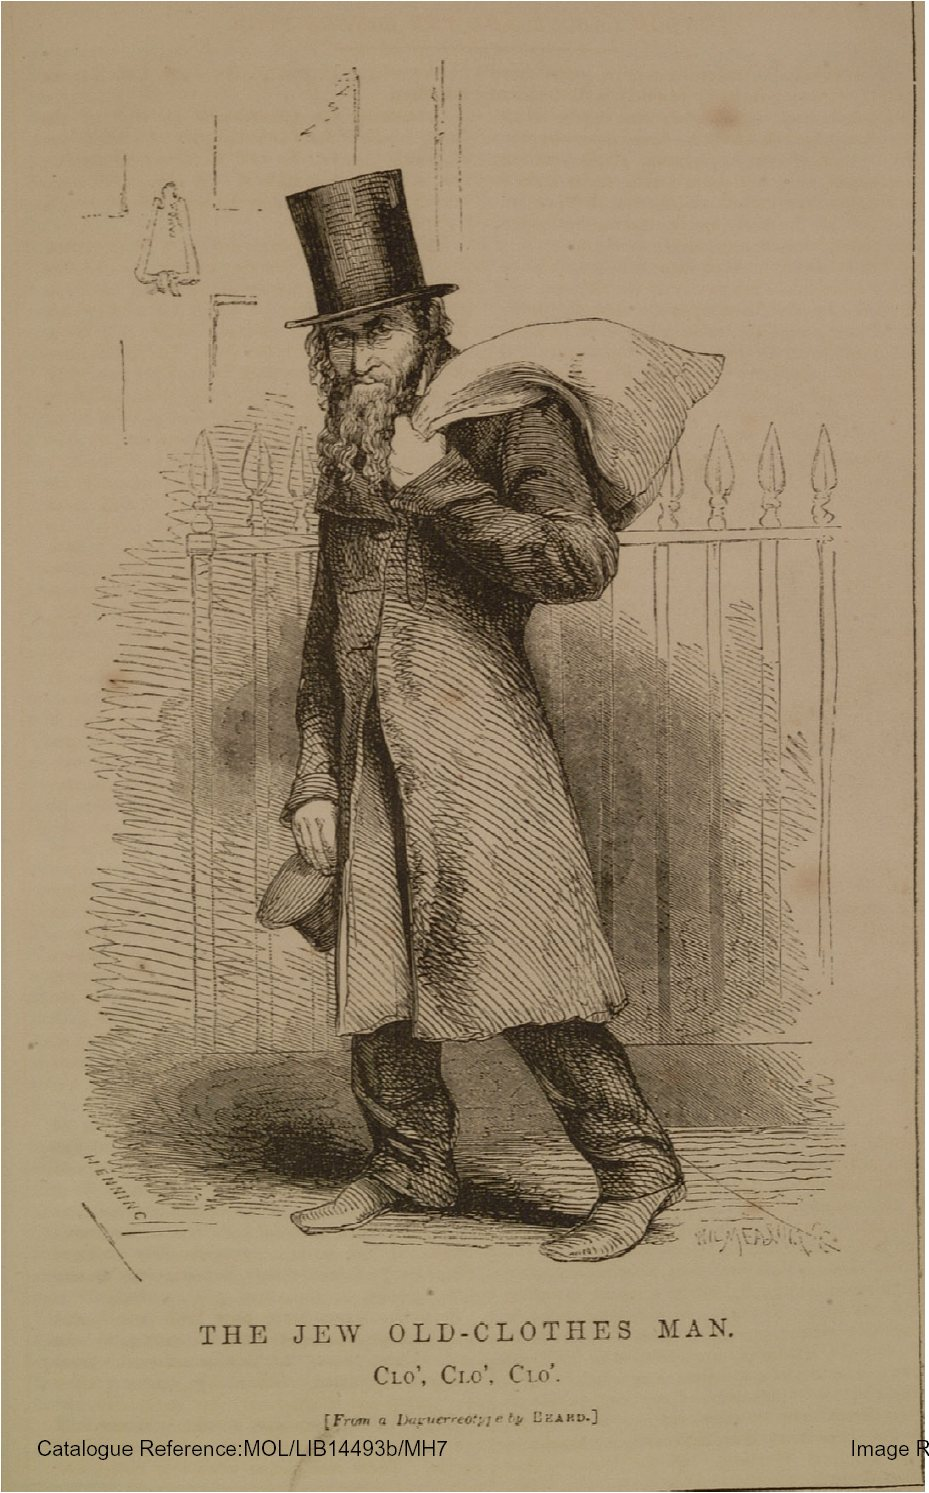 Measom_The_Jew_Old-Clothes_Man_1861